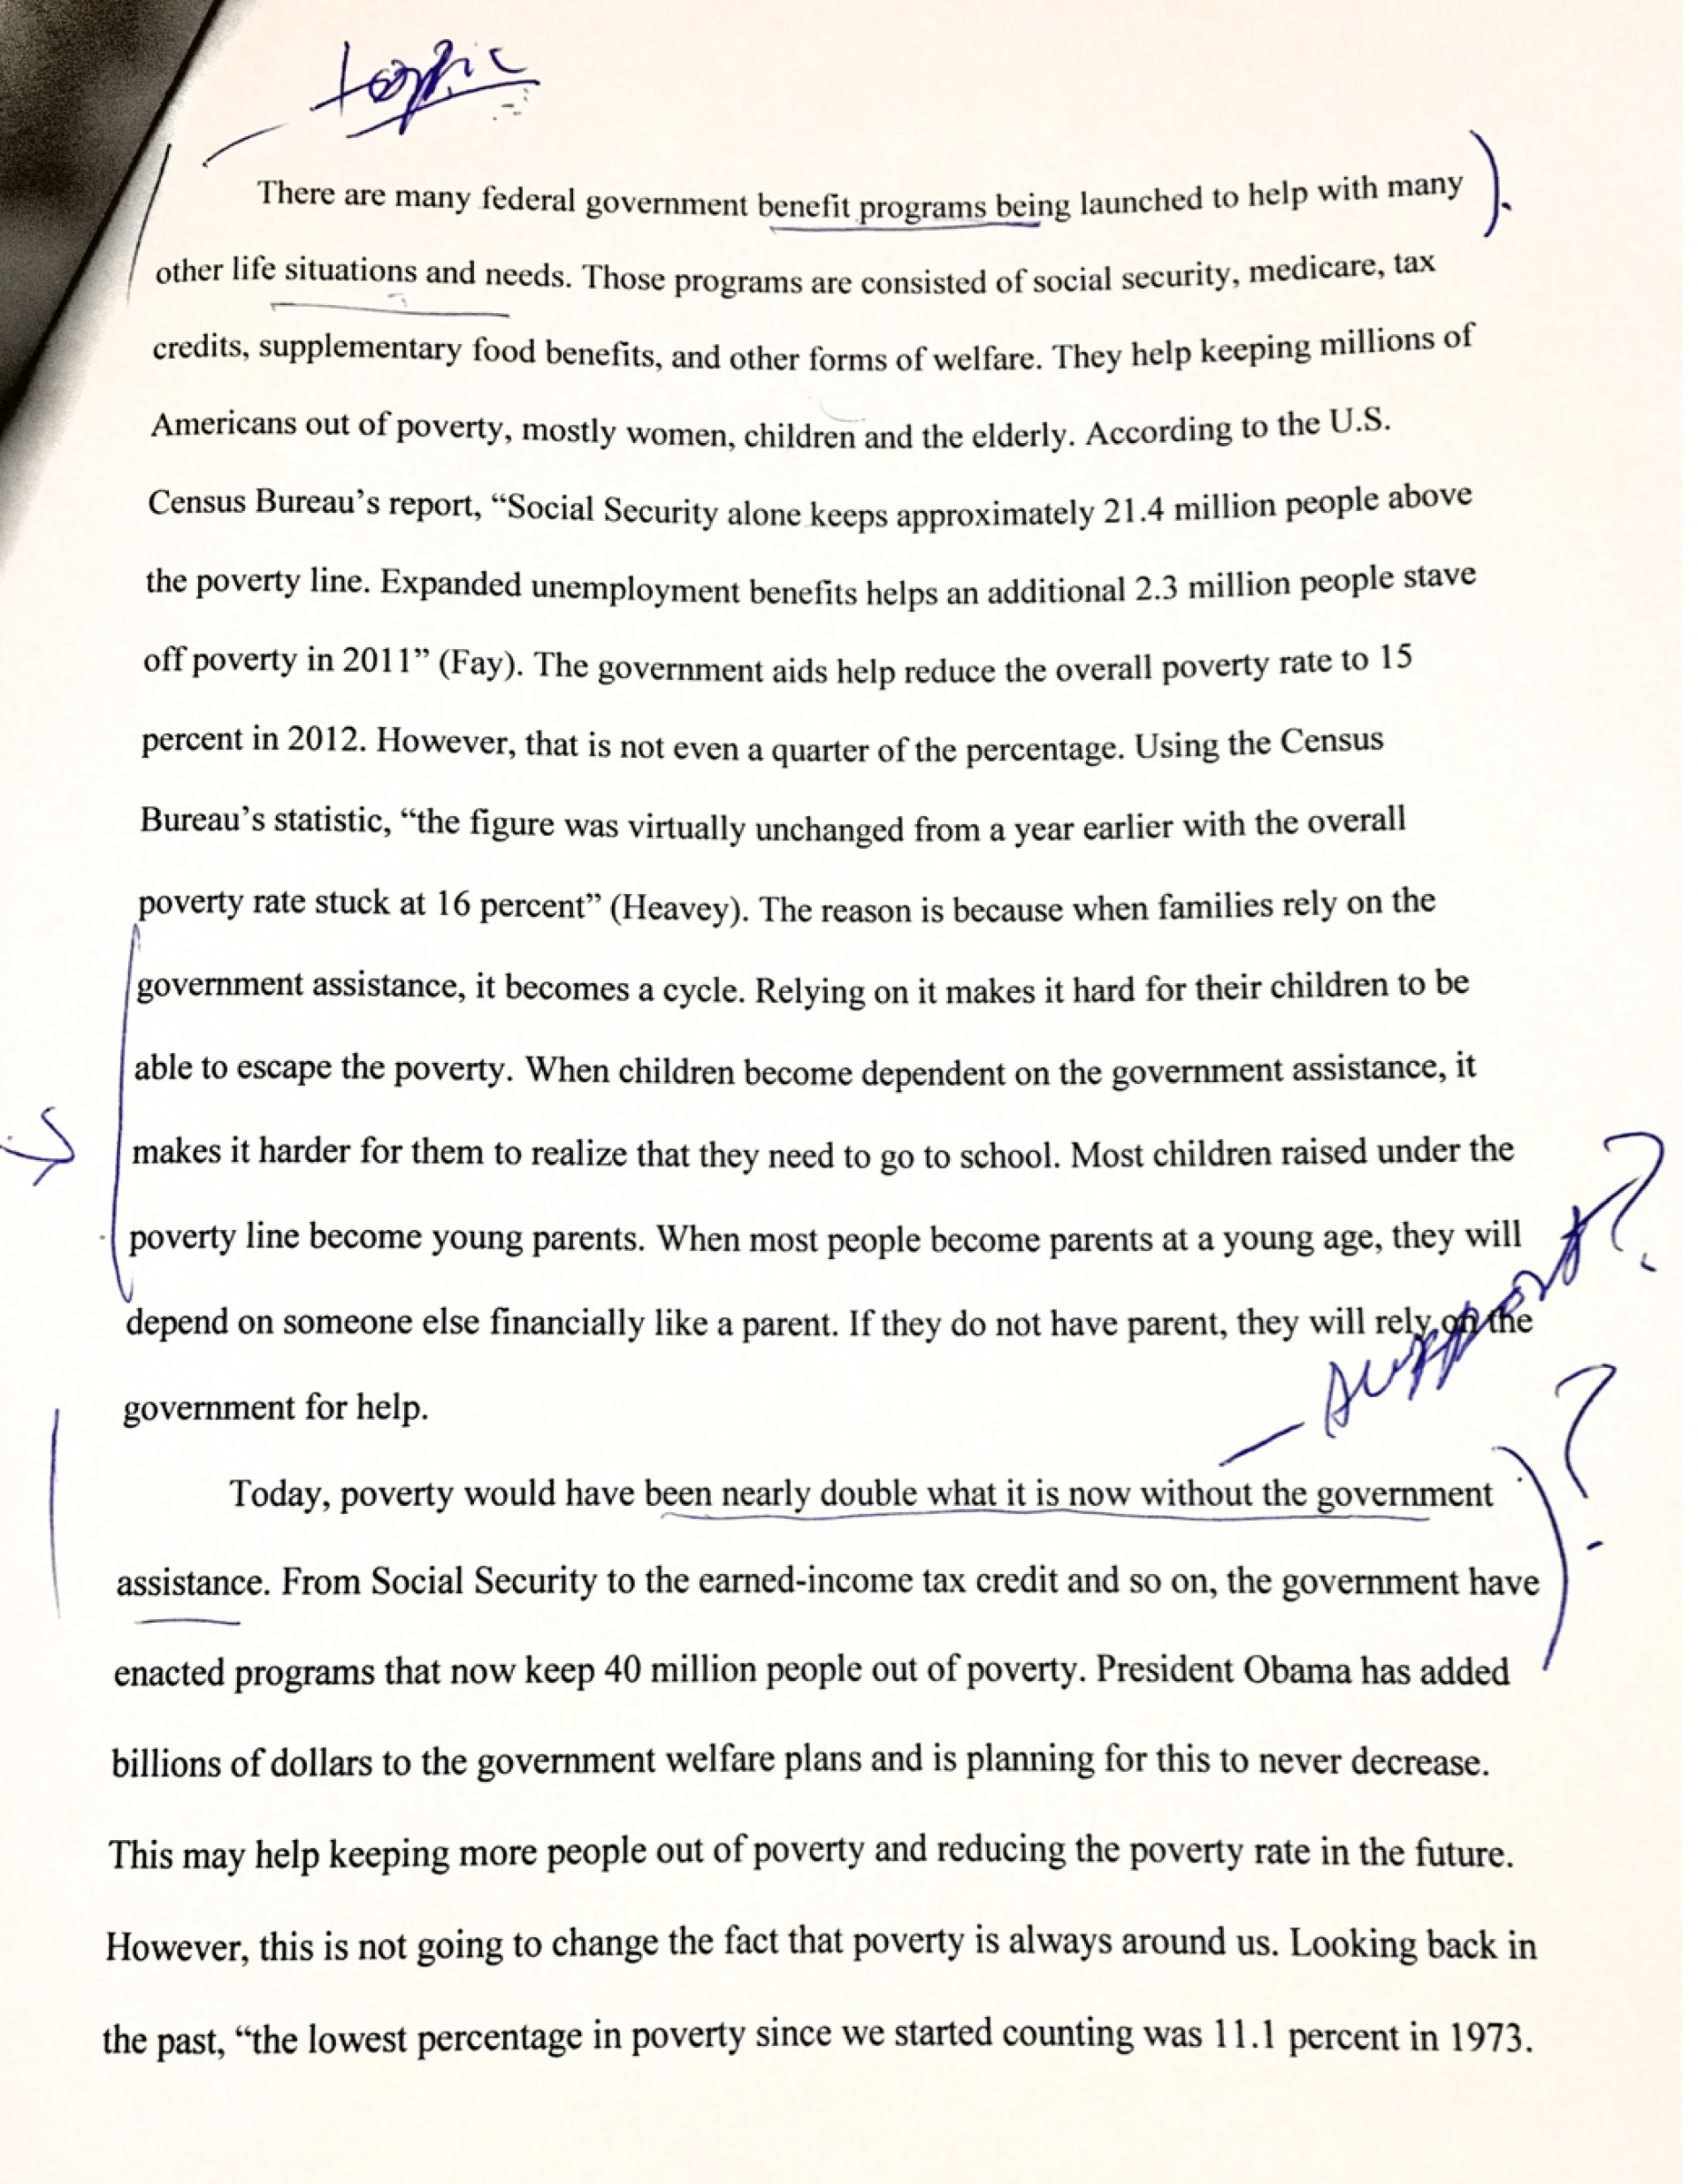 022 Essay Example How To Write Claim For An Argumentative Can Someone Please Help Me Rewrite Or Fix Those Mistakes On My Frightening A Good Rebuttal In 1920